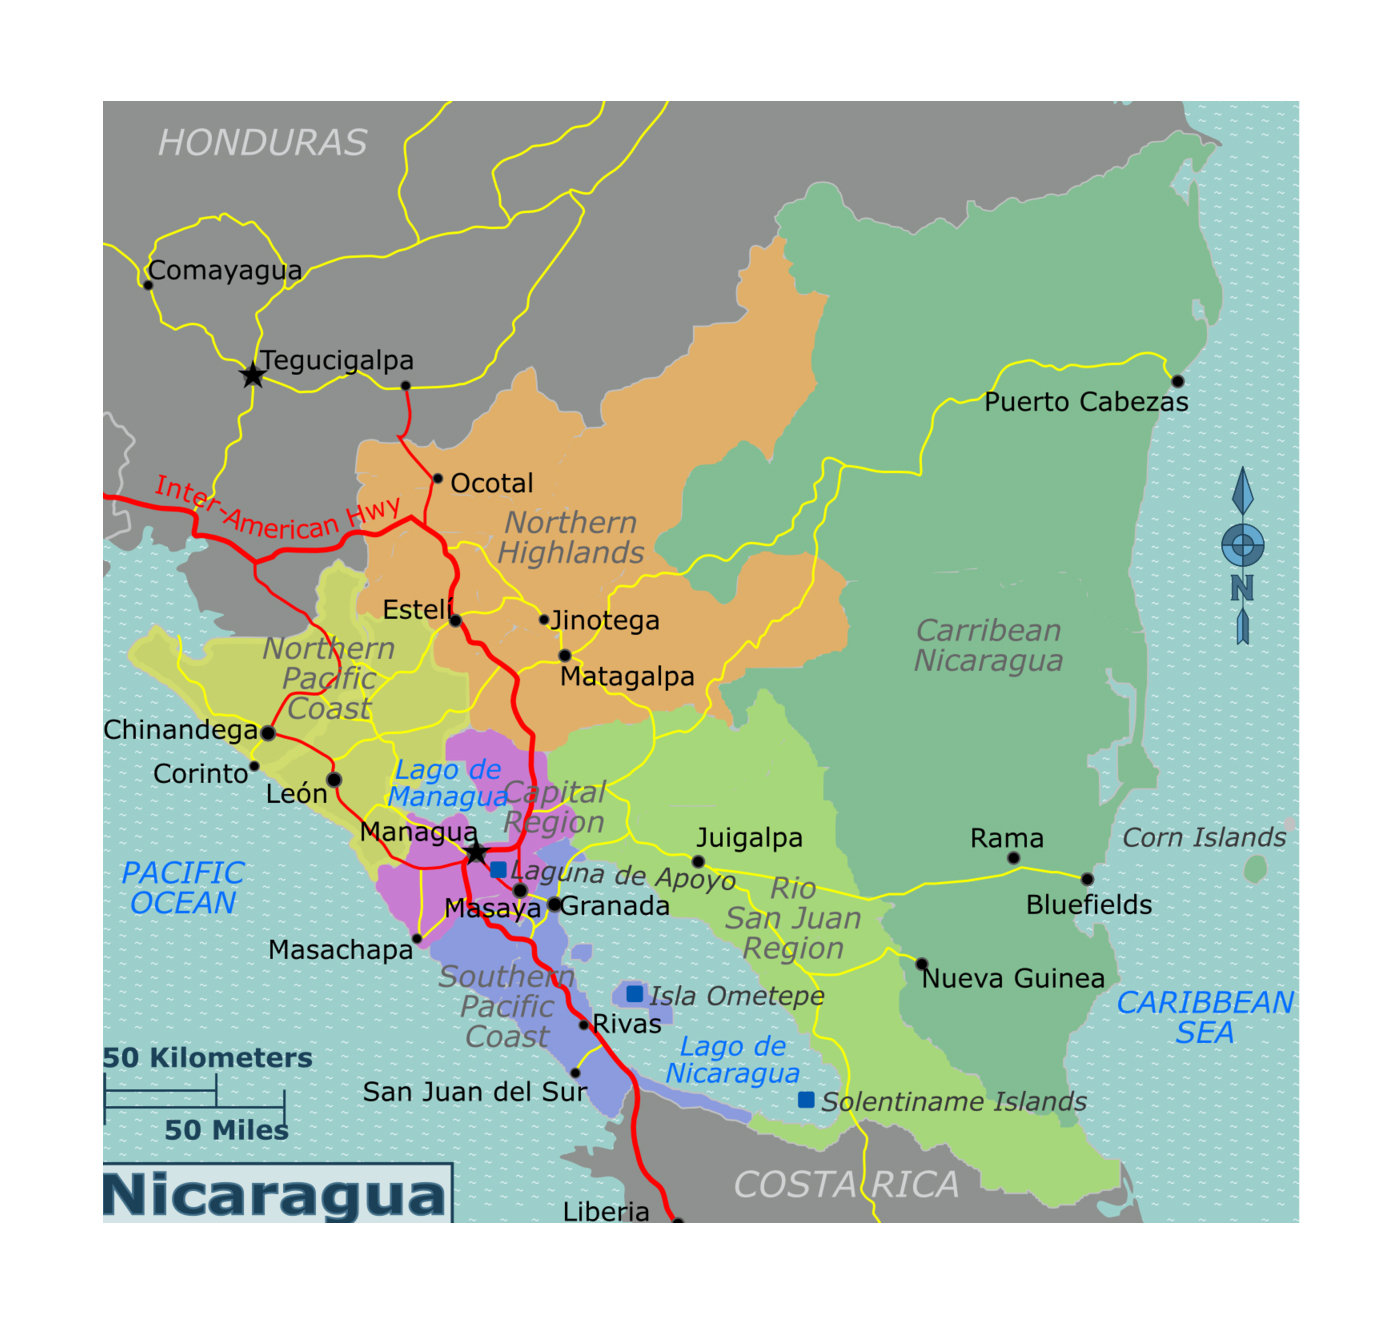 Detailed regions map of Nicaragua | Nicaragua | North ... on map of la concepcion nicaragua, map of nandaime nicaragua, map of granada nicaragua, map of waslala nicaragua, map of ocotal nicaragua, map of momotombo nicaragua, map of diriamba nicaragua, map of nueva guinea nicaragua, map of managua nicaragua, map of bluefields nicaragua, map of pearl lagoon nicaragua, map of las penitas nicaragua, map of san rafael del sur nicaragua, map of chinandega nicaragua, map of north america nicaragua, map of camoapa nicaragua, map of big corn island nicaragua, map of jinotega nicaragua, map of playa maderas nicaragua, map of leon nicaragua,